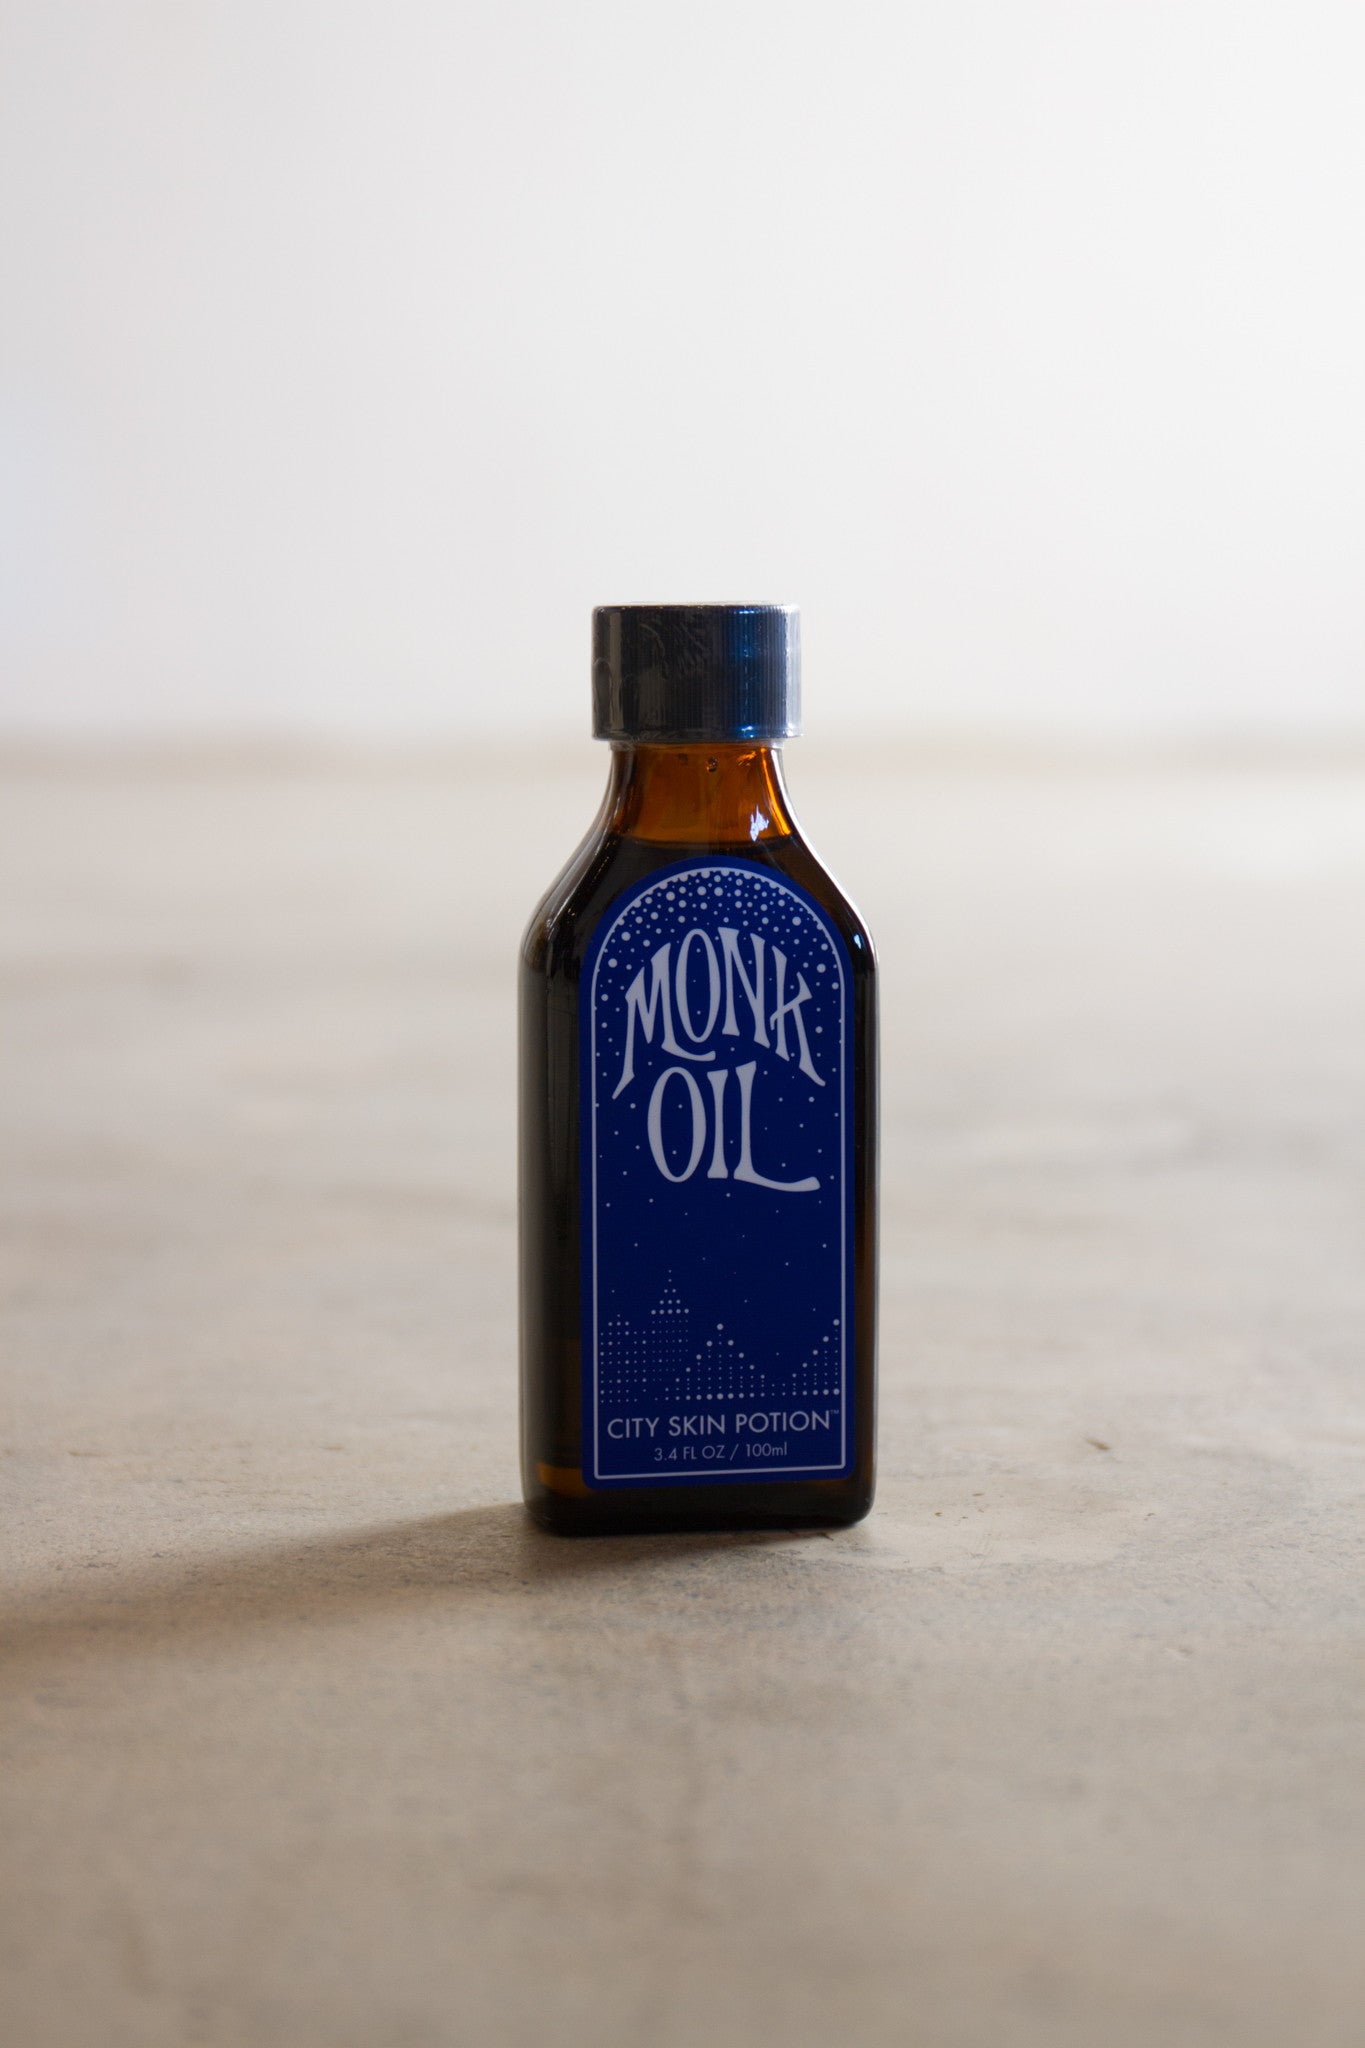 Monk Oil City Skin Potion No.1